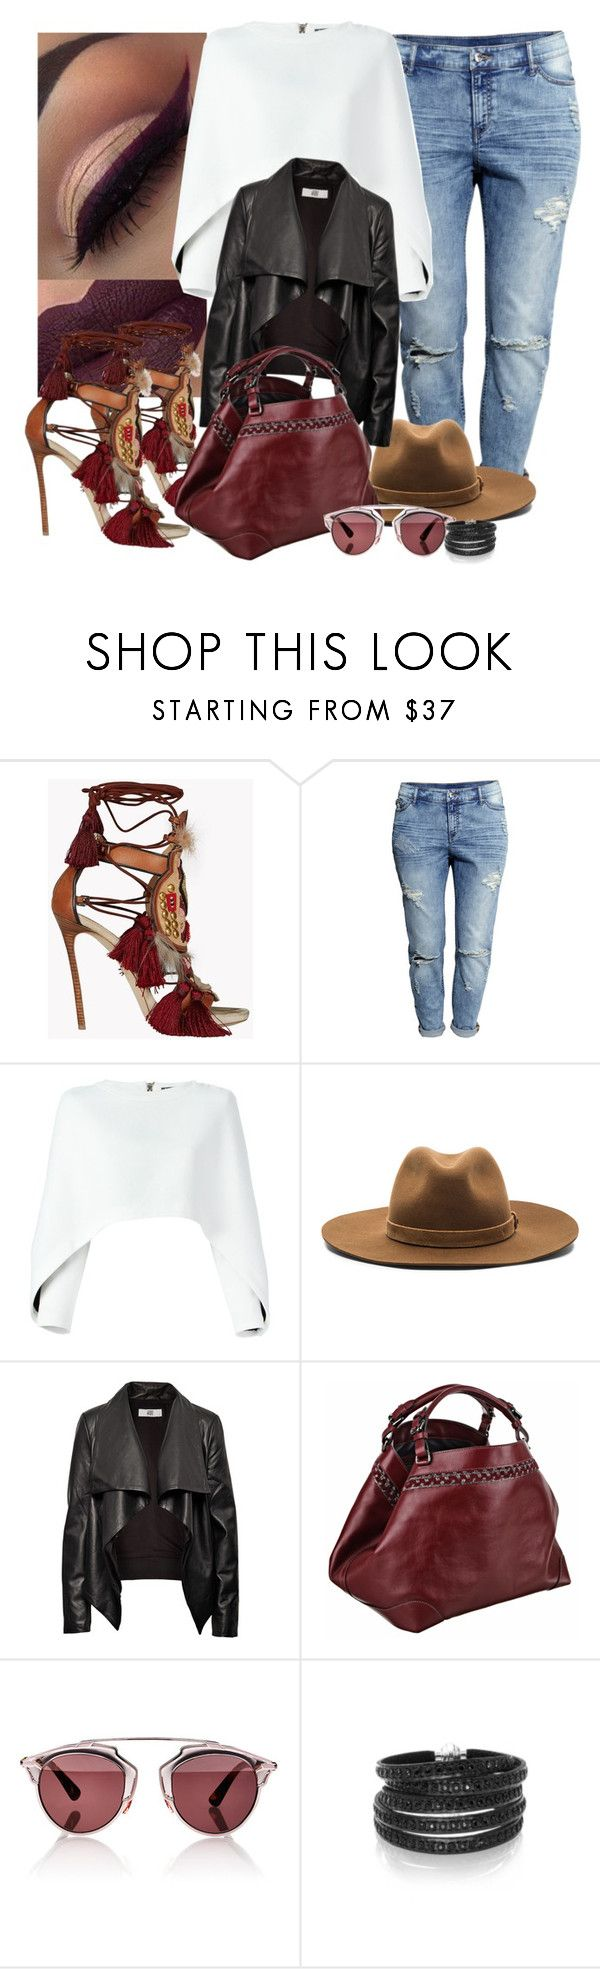 """""""Me toca 🎶"""" by mrs-brown-carter ❤ liked on Polyvore featuring Dsquared2, H&M, Balmain, rag & bone, HIDE, Caroline De Marchi, Christian Dior and Sif Jakobs Jewellery"""